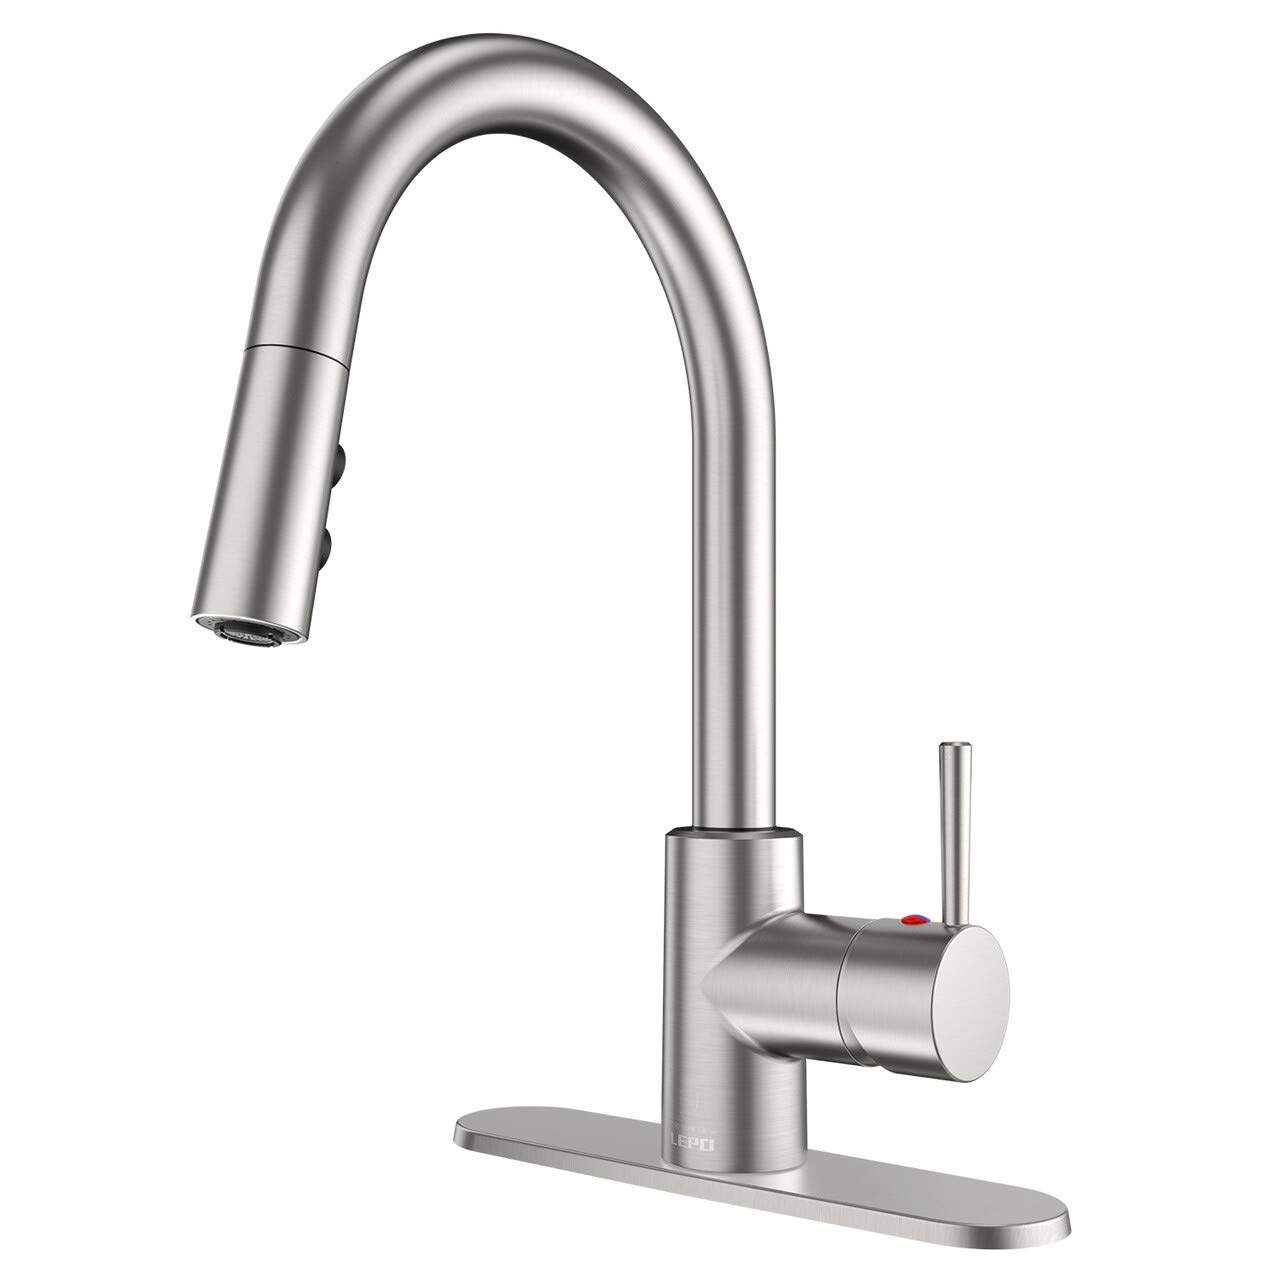 LEPO Kitchen Faucet,Commercial High Arc Pull Out Kitchen Sink Faucet with Pull Down Sprayer,Brushed Nickel Lead-Free Stainless Steel Bar Kitchen Sink Faucet,Single Hole and 3 Hole Deck Mount